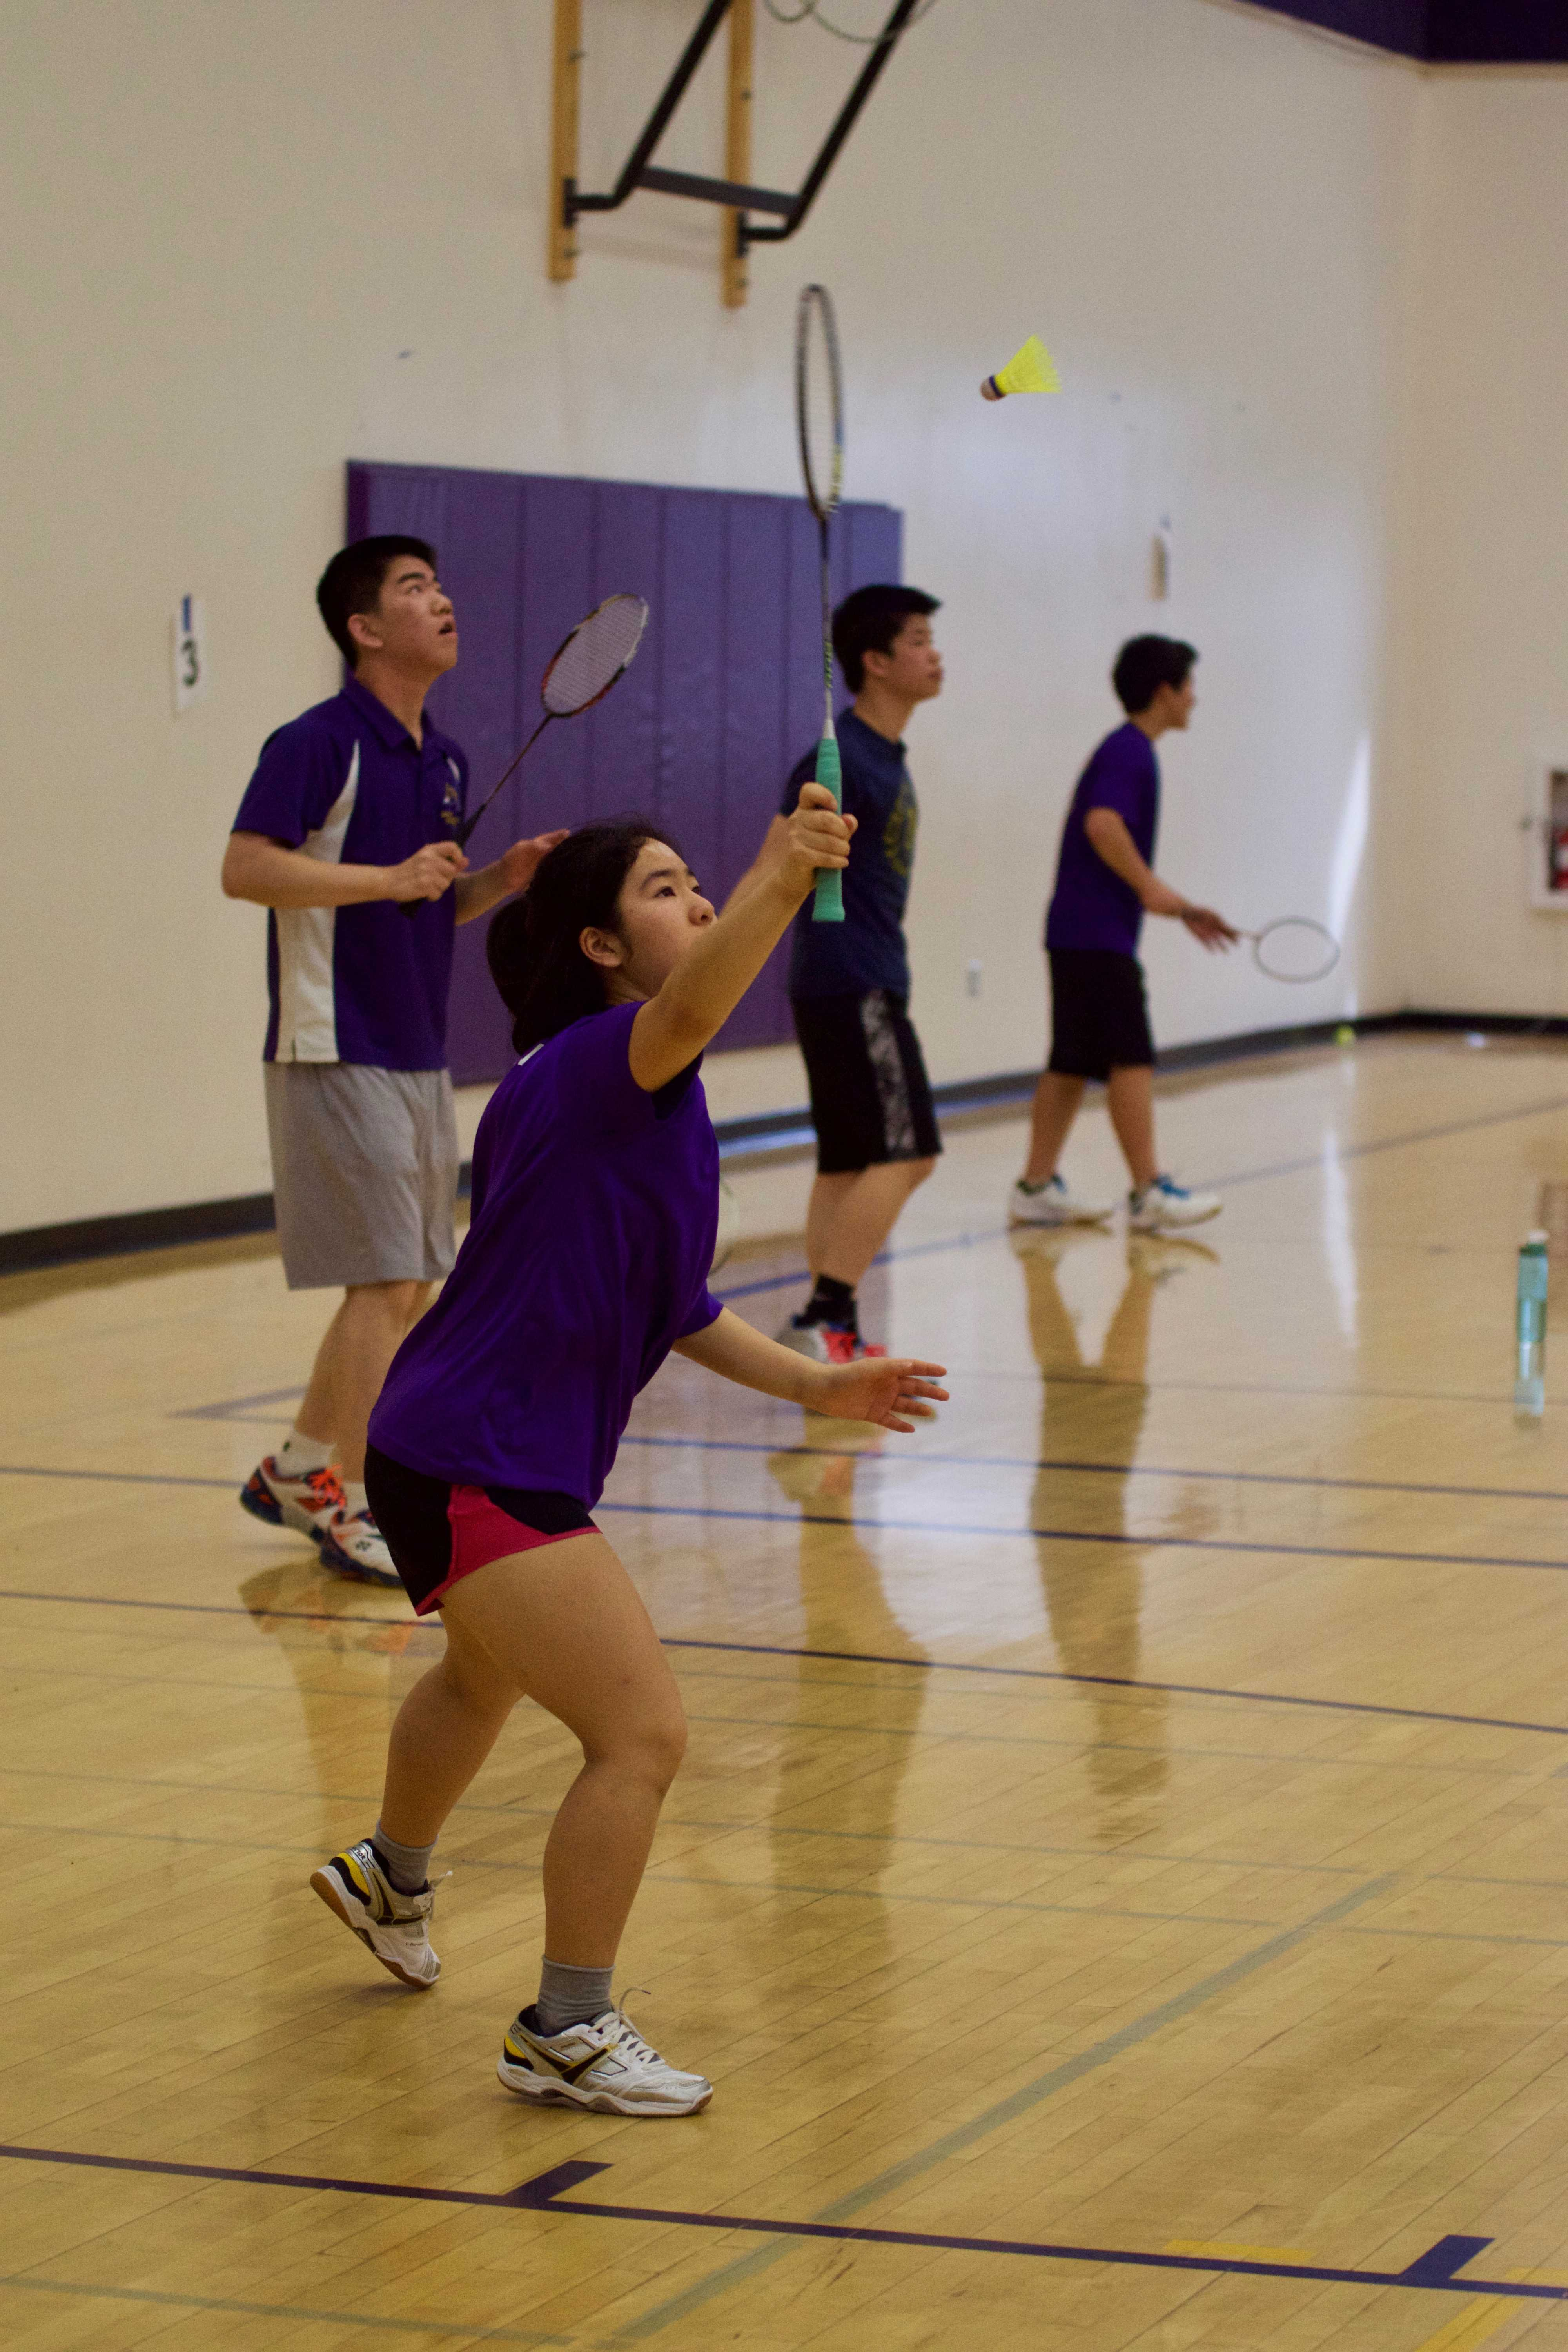 PHOTOS Badminton Milpitas Sports Flash - 2